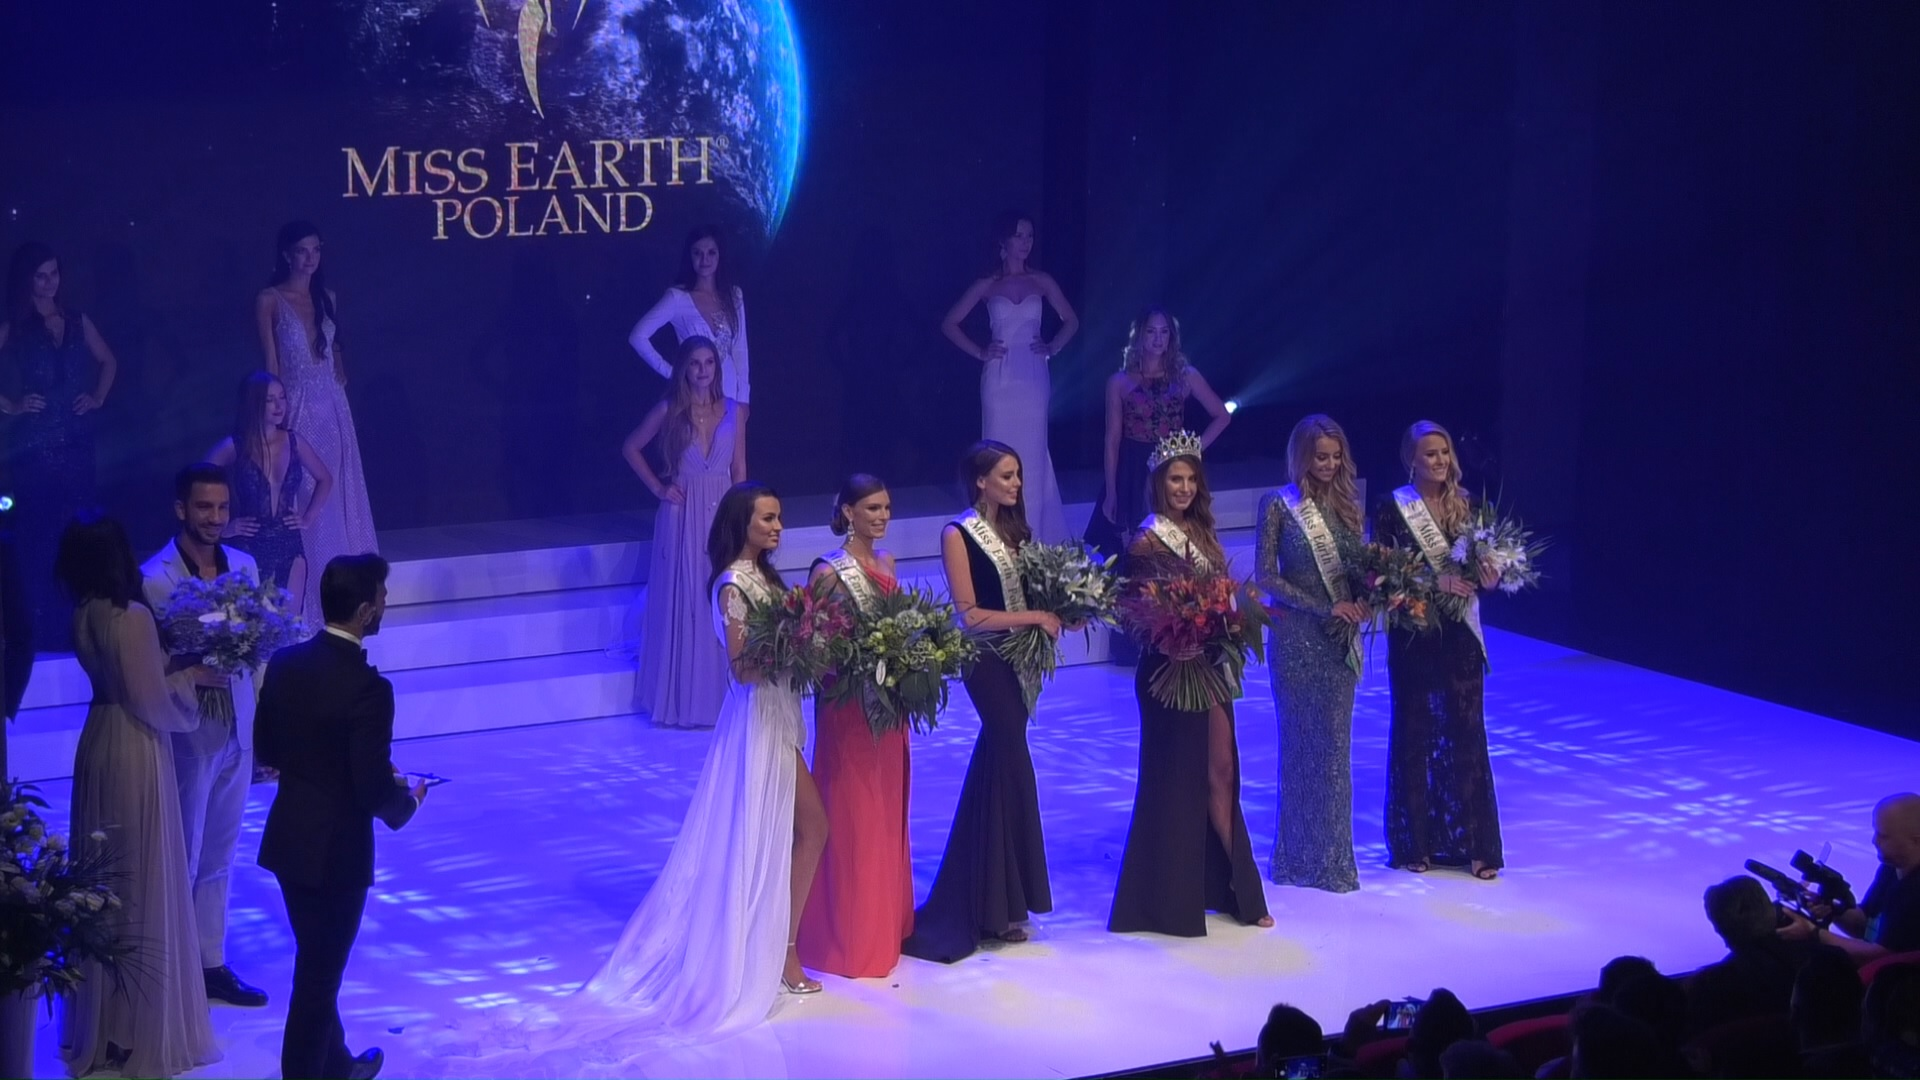 Miss Earth Poland 2018